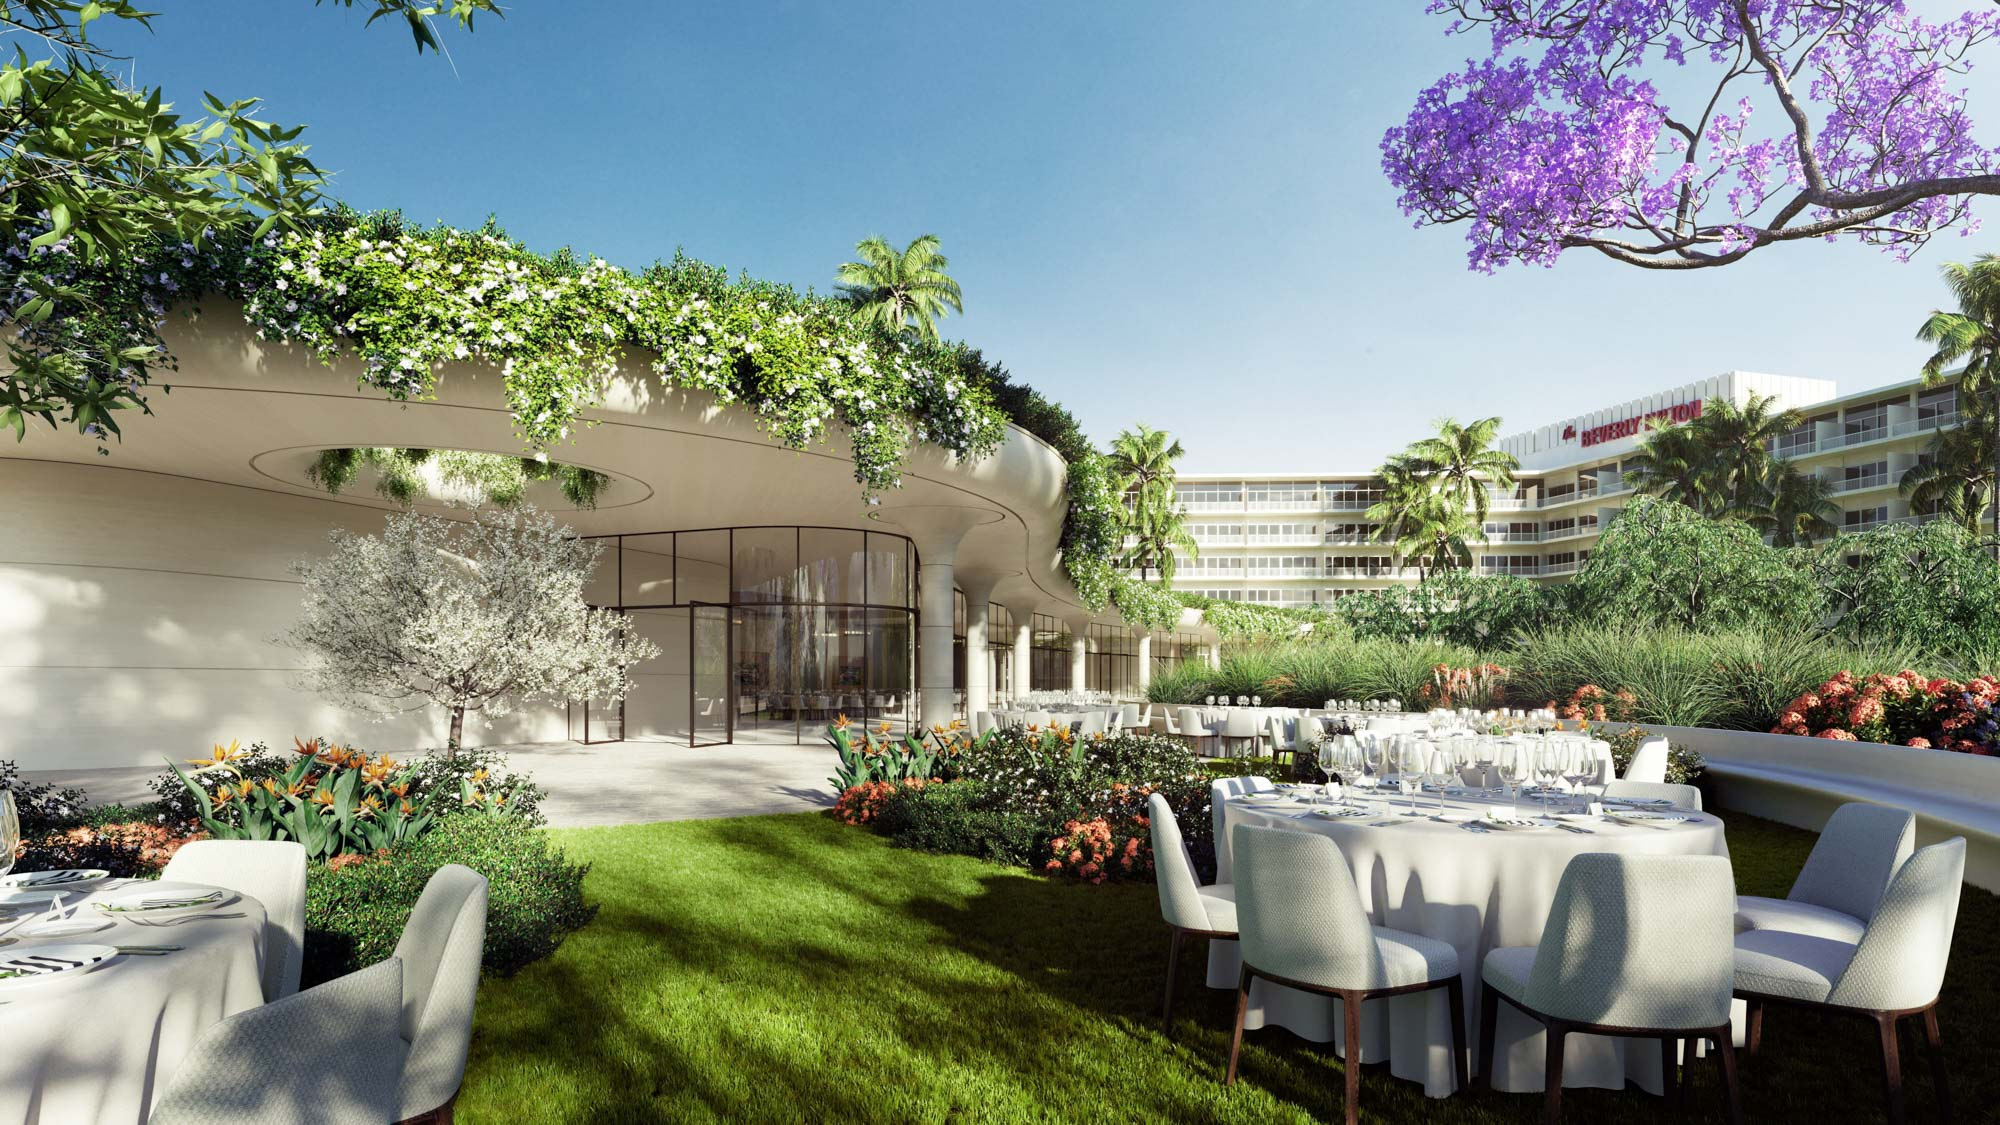 One Beverly Hills conference center outdoor reception area set for an event